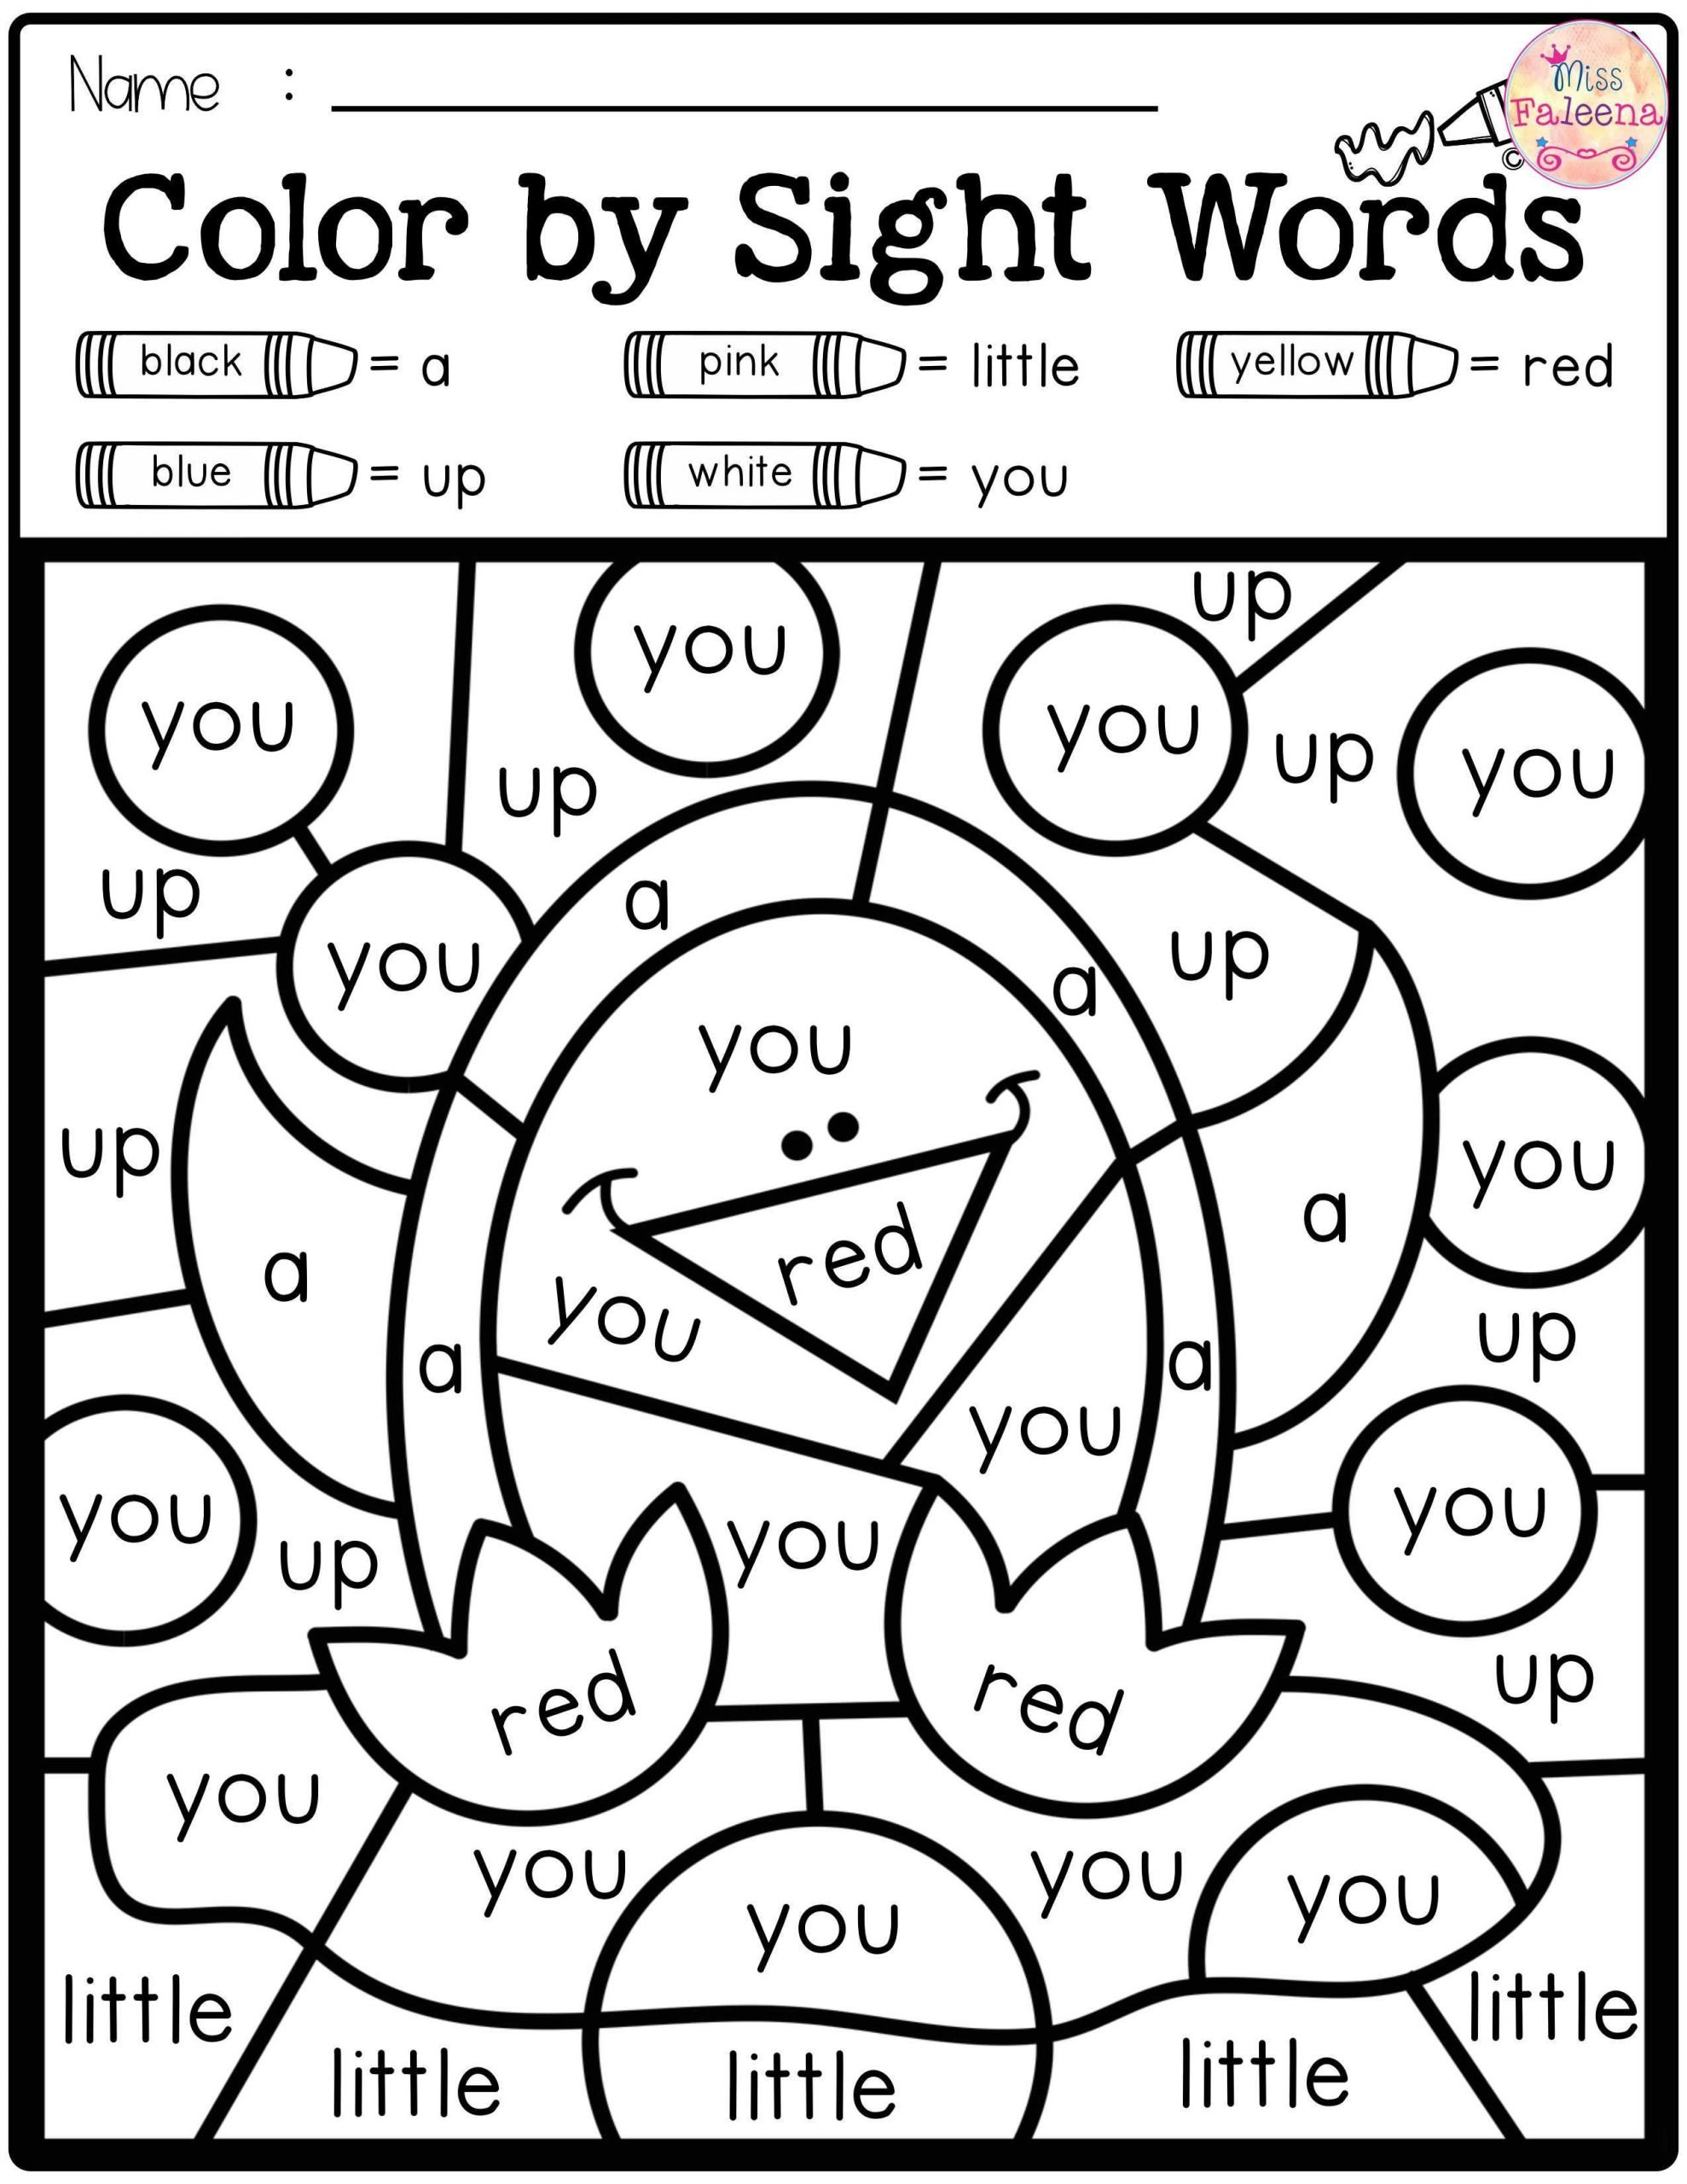 Free Color Word Worksheets Free Color by Sight Words Has A Page Of Color by Sight Words